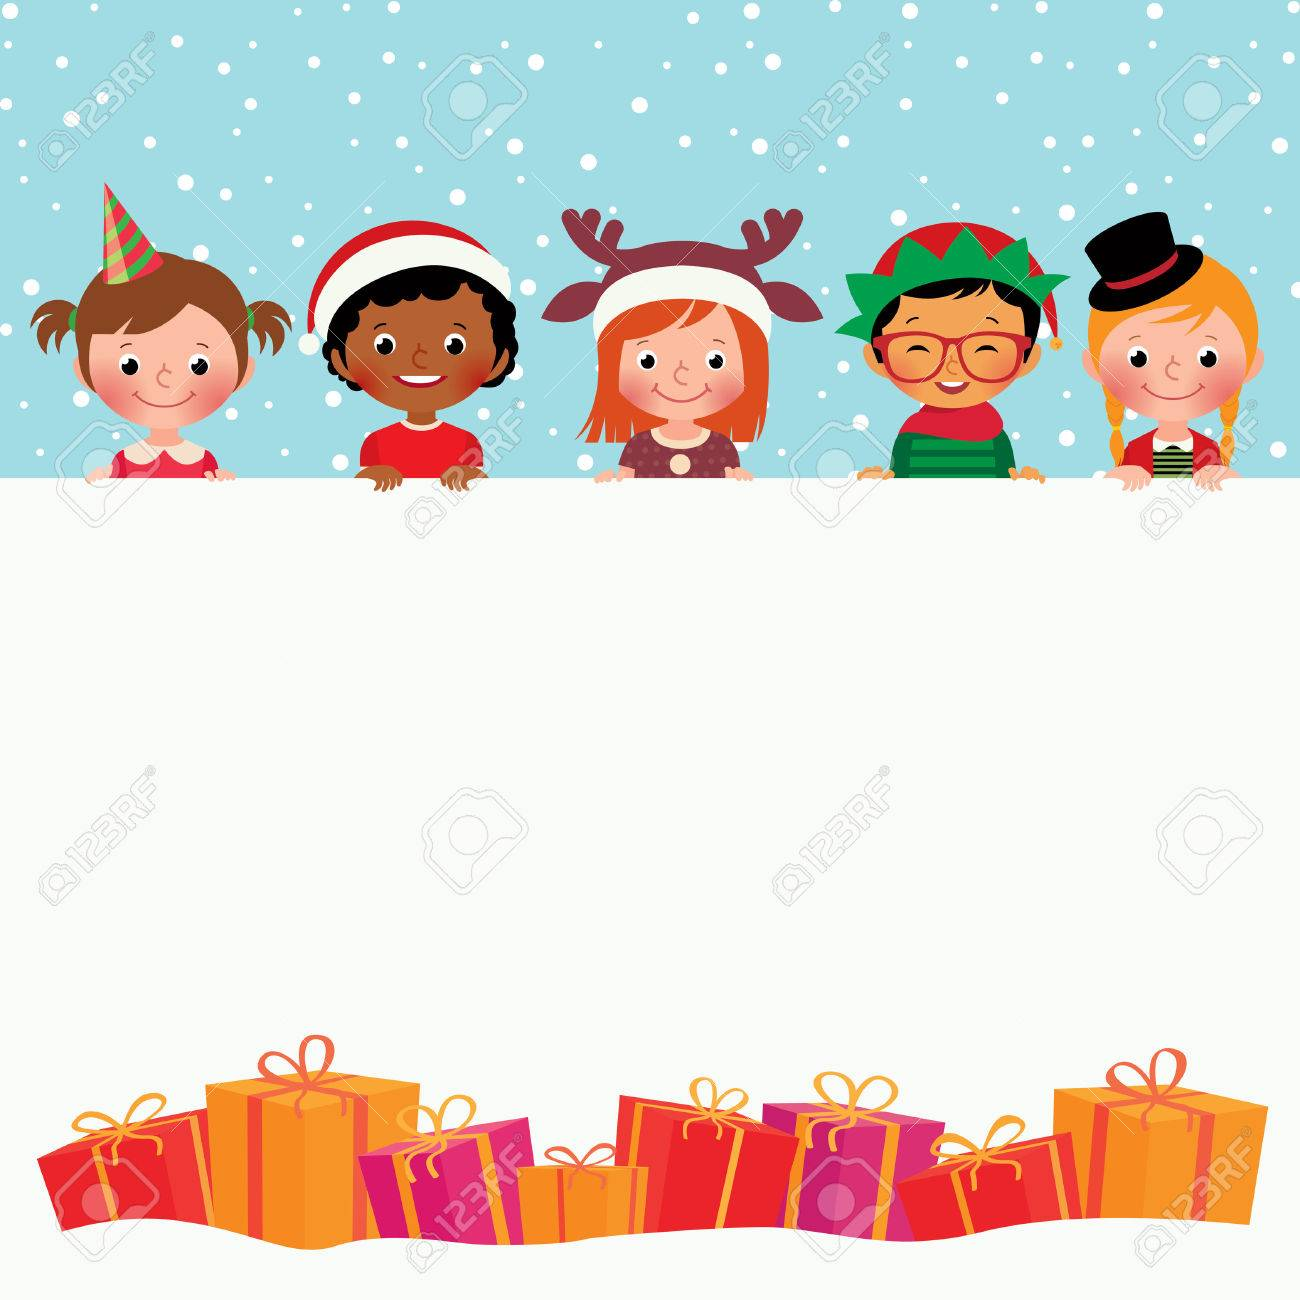 Stock vector illustration of Christmas Card Children in holiday costumes and gifts - 48671886